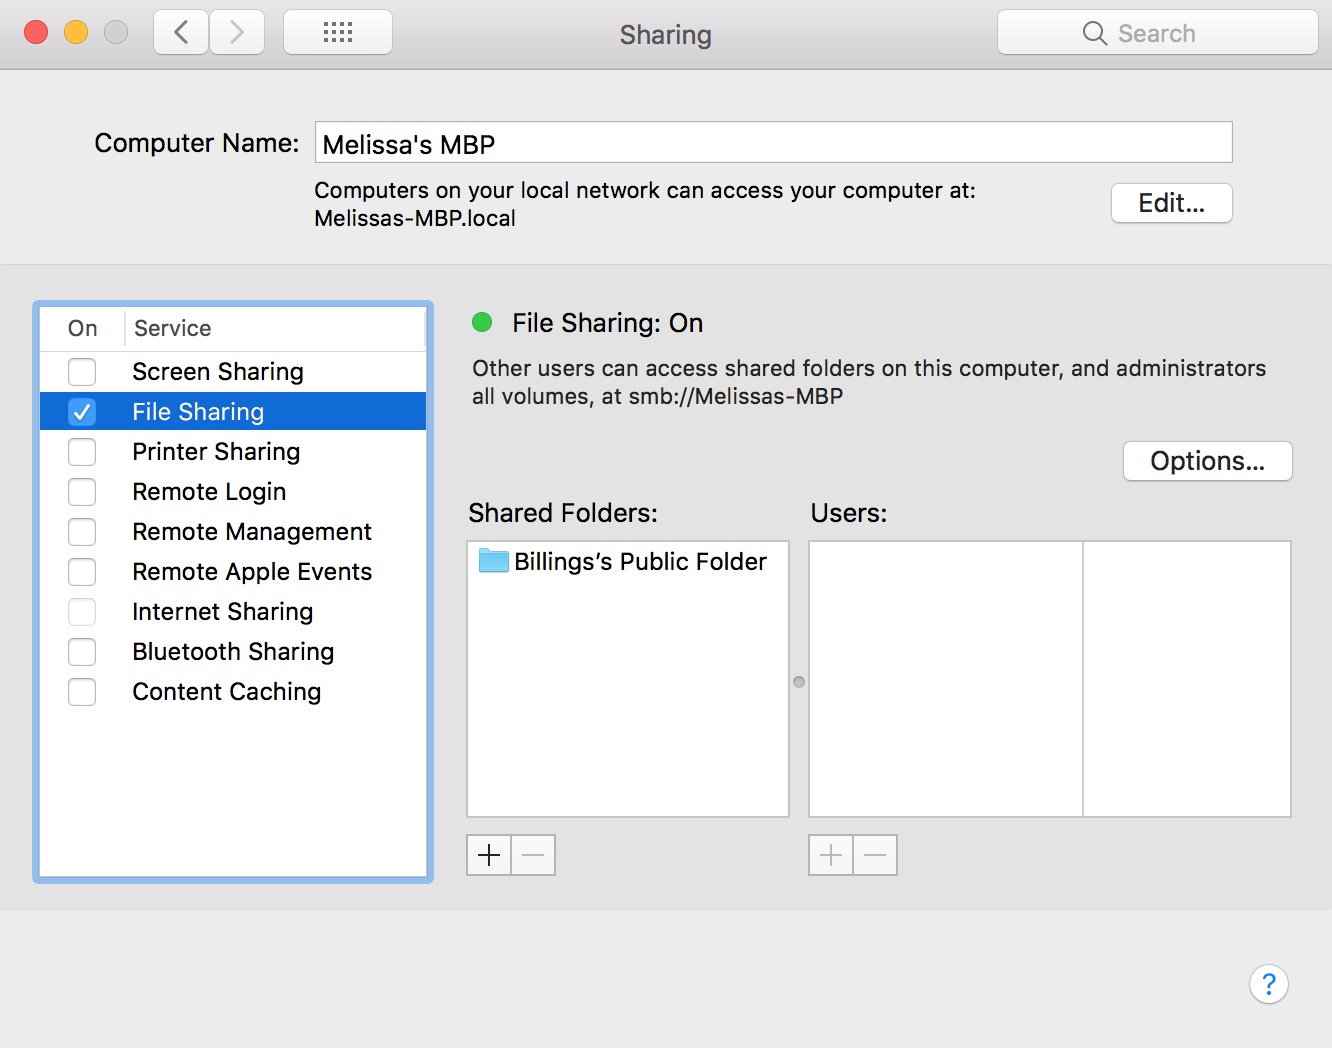 macOS Sharing Settings with File Sharing enabled